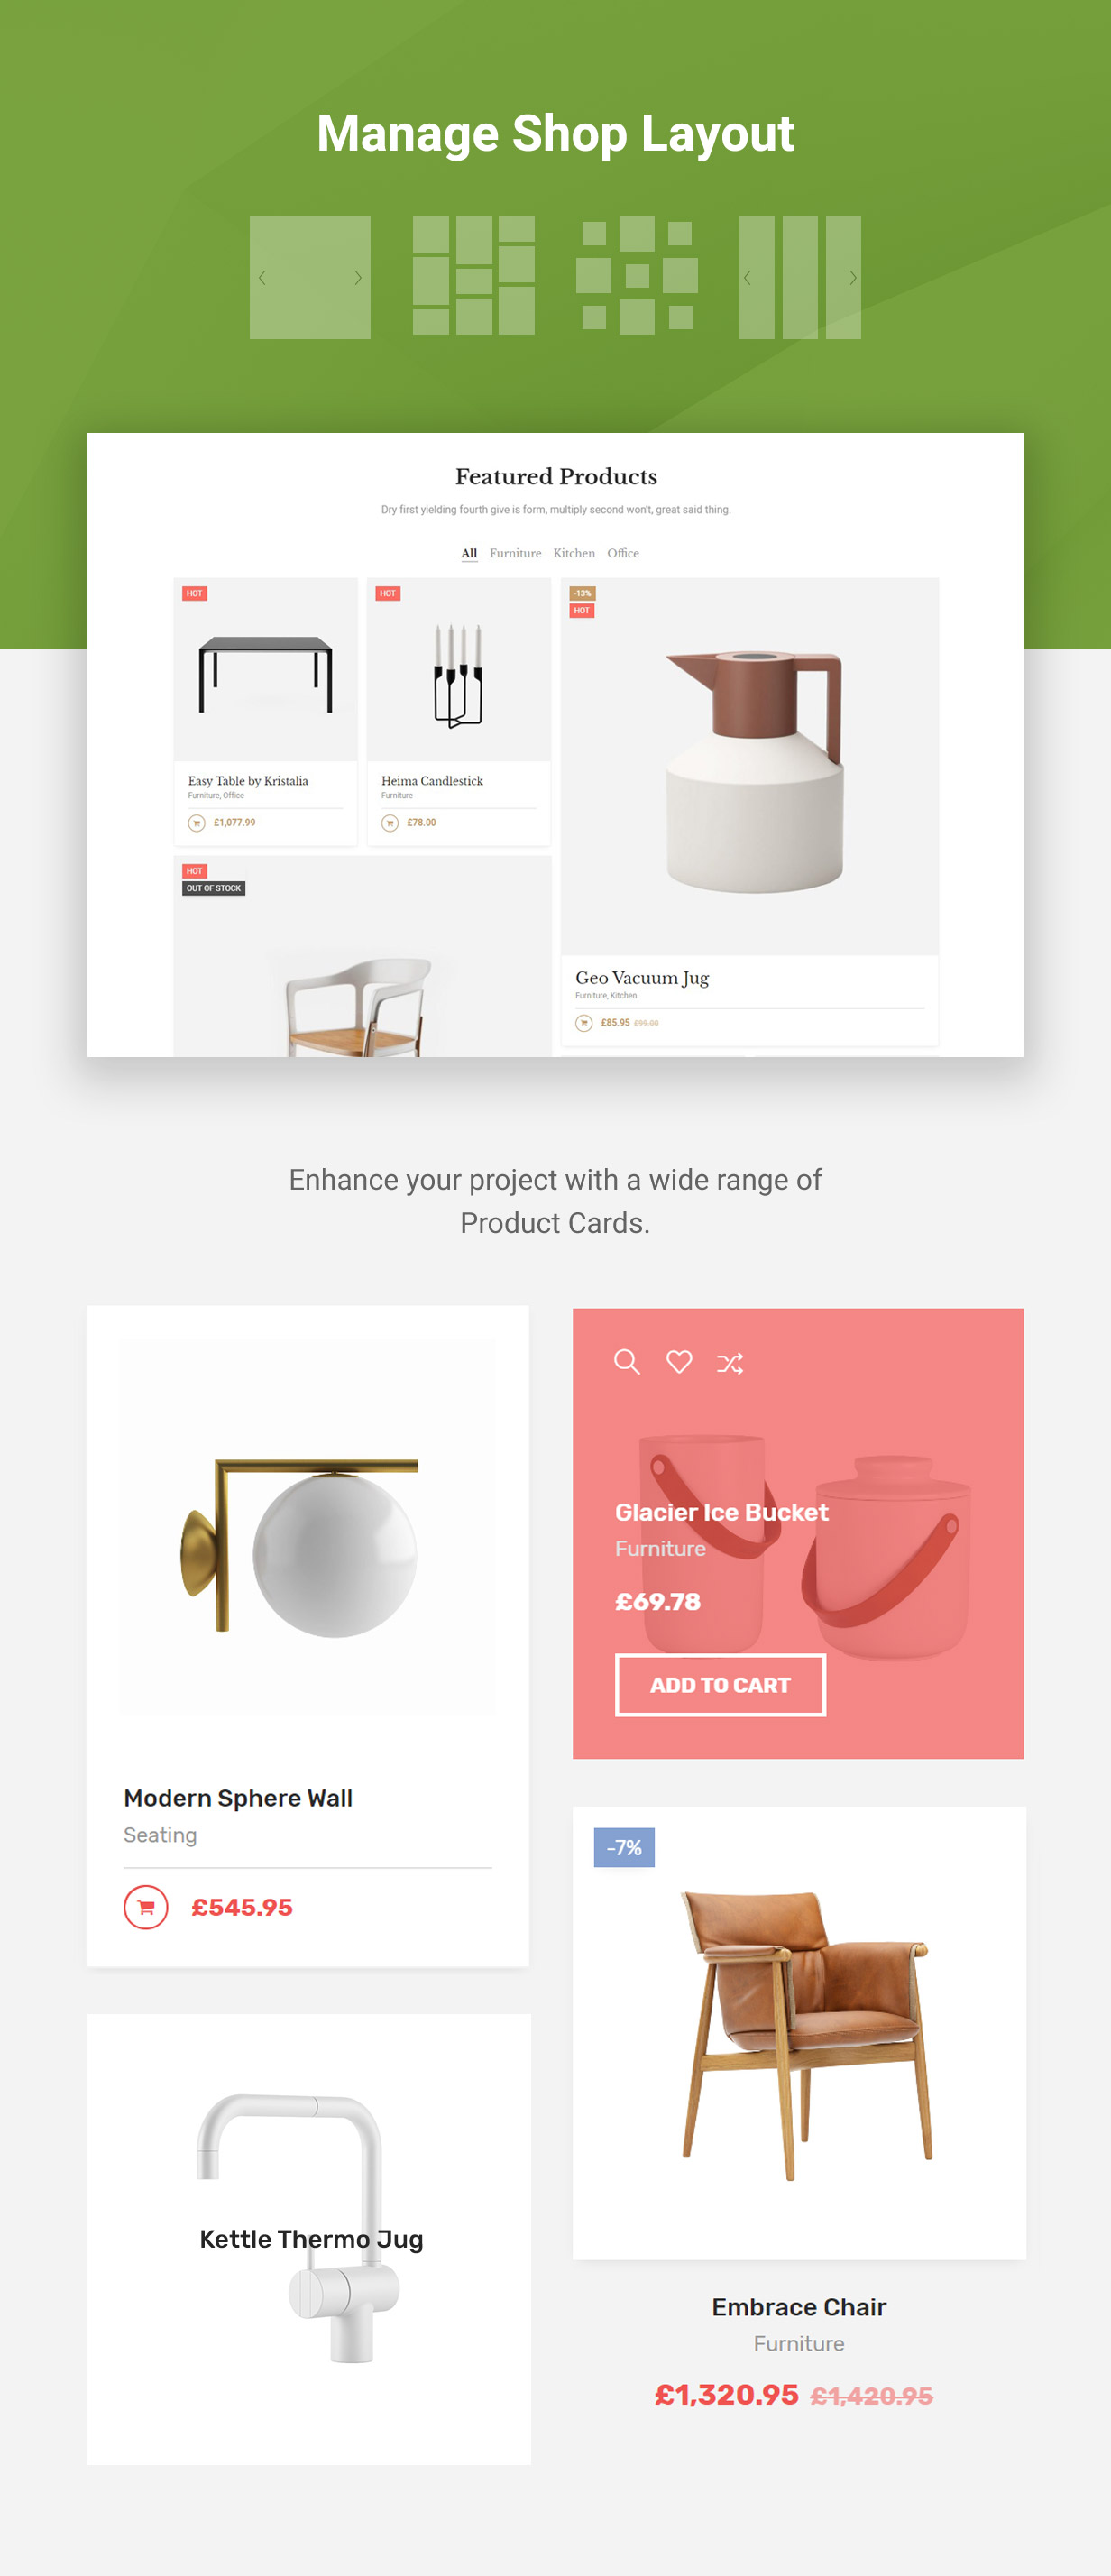 Nels - An Exquisite eCommerce WordPress Theme - 5